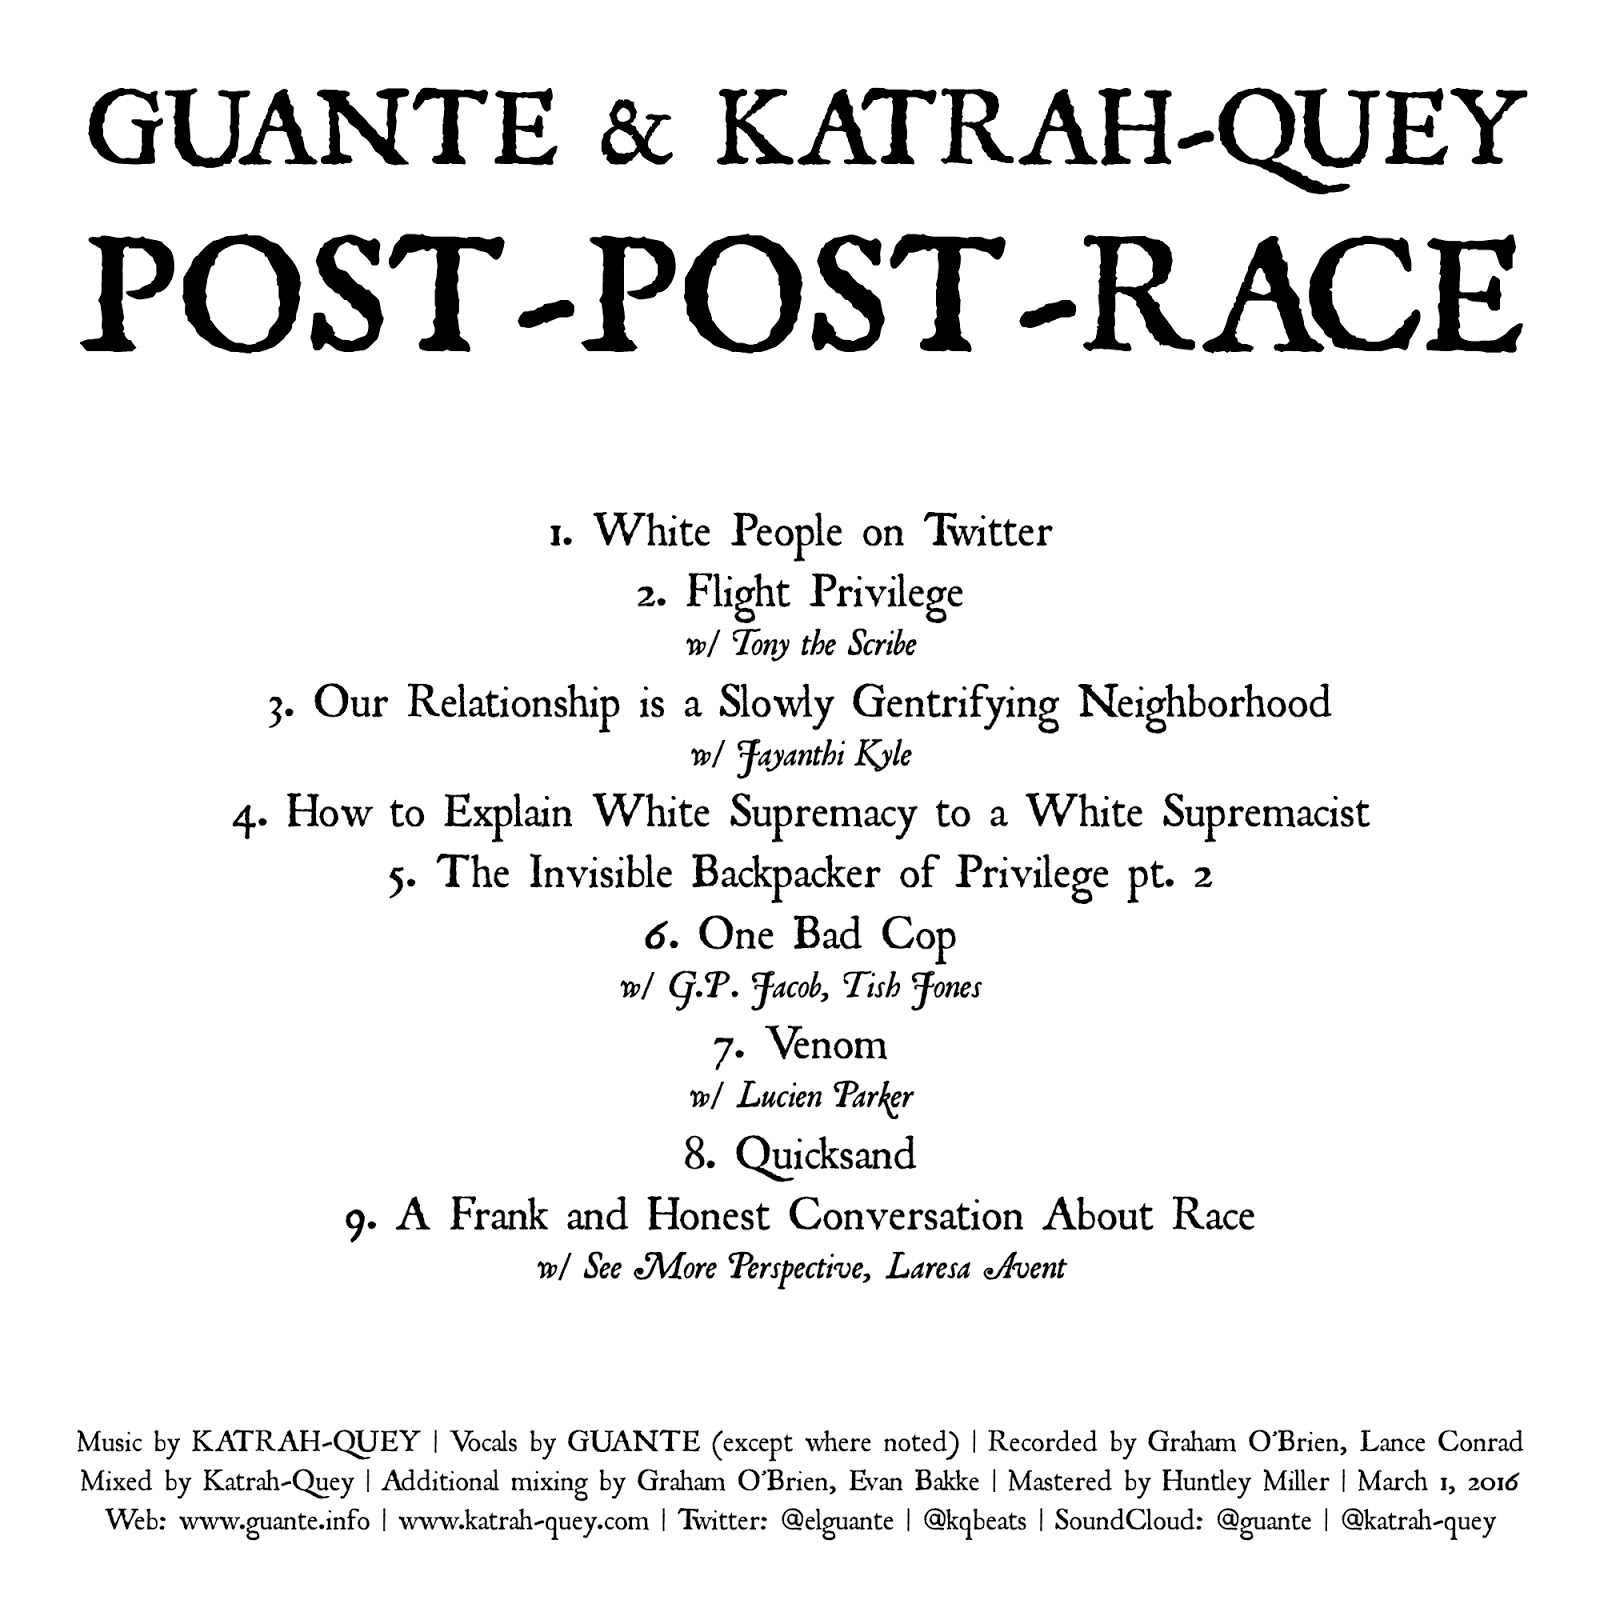 Guante Guante Katrah Quey Post Post Race Available Now